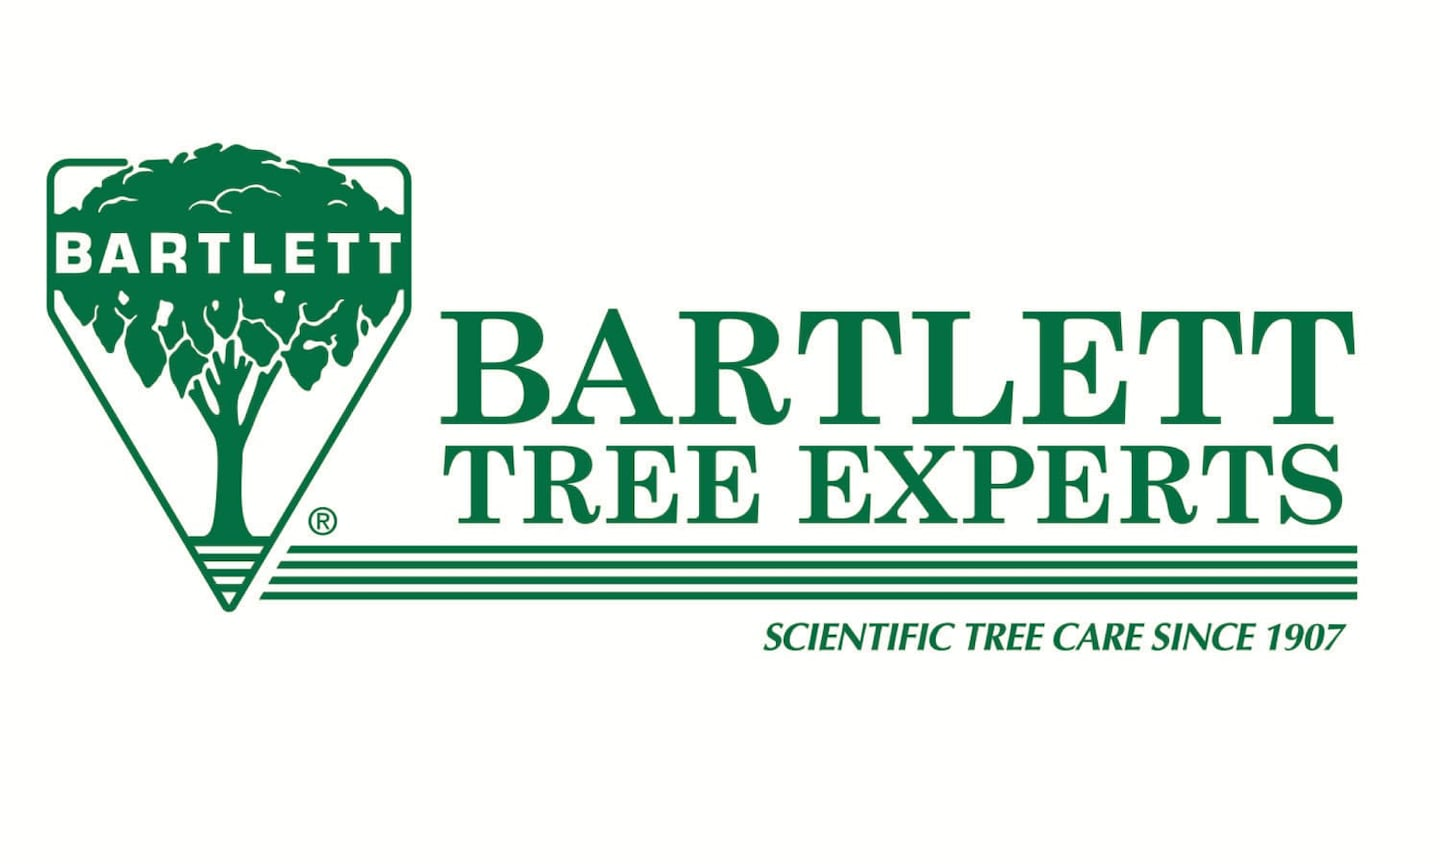 Bartlett Tree Experts - 121511